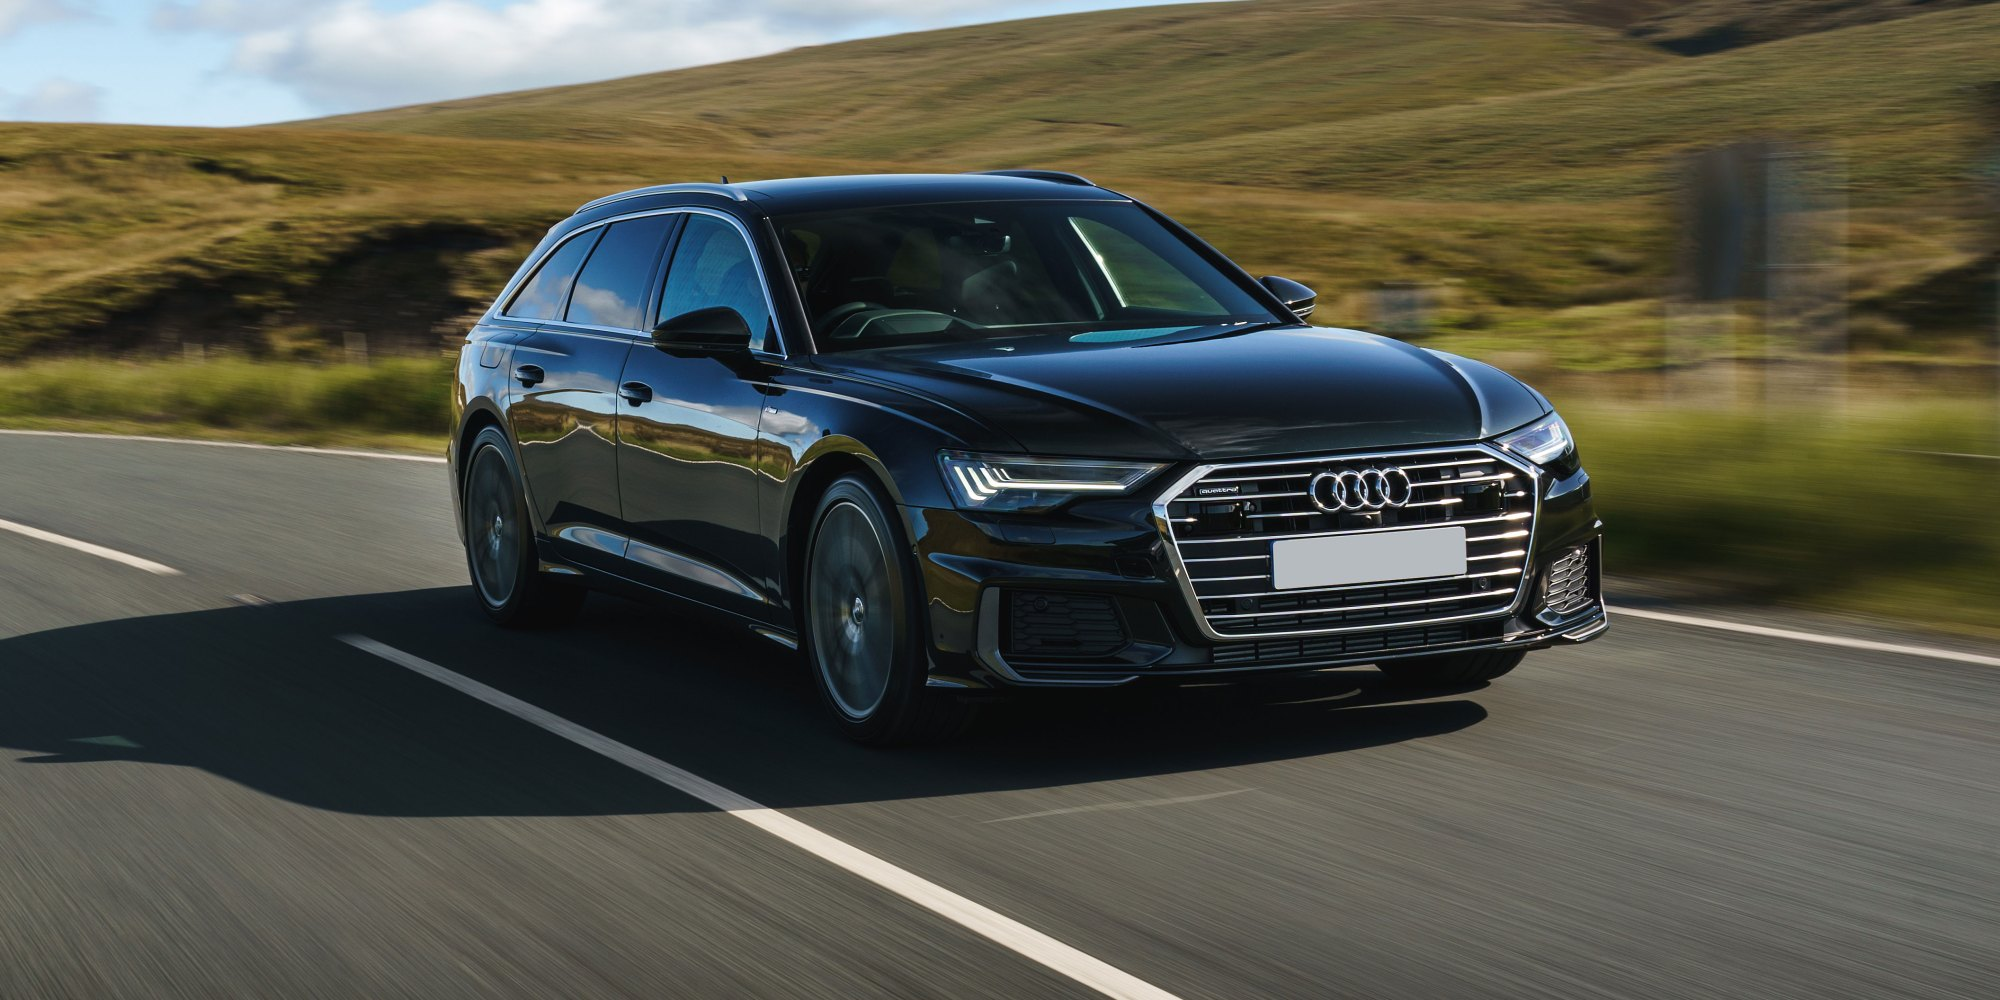 hight resolution of audi a6 all lights meaning wiring diagram centrenew audi a6 avant review carwowaudi a6 all lights